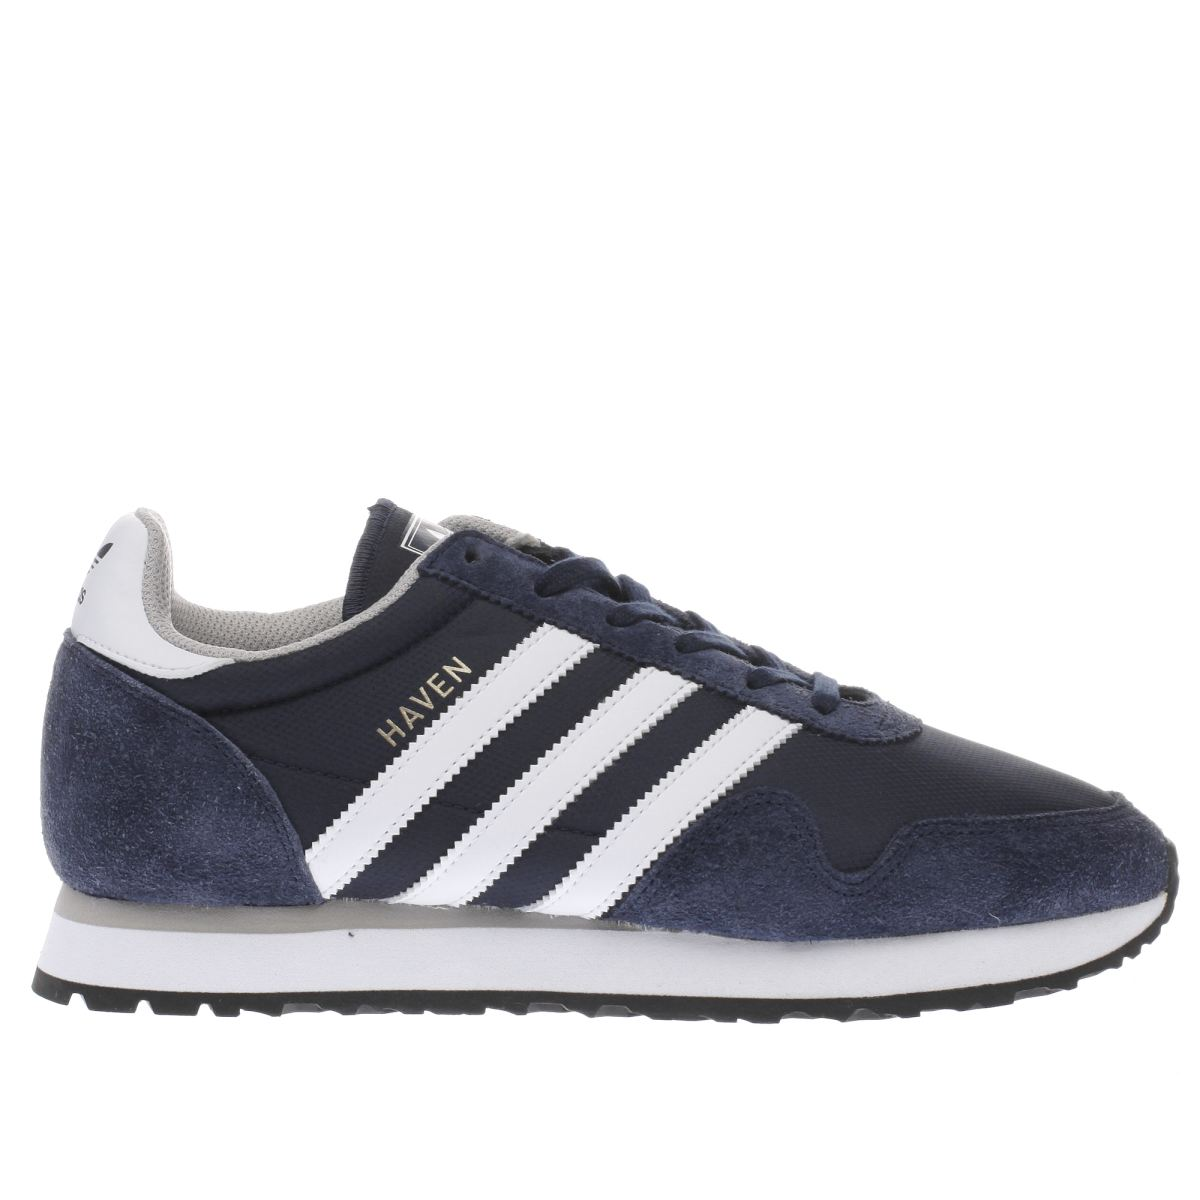 adidas navy & white haven trainers